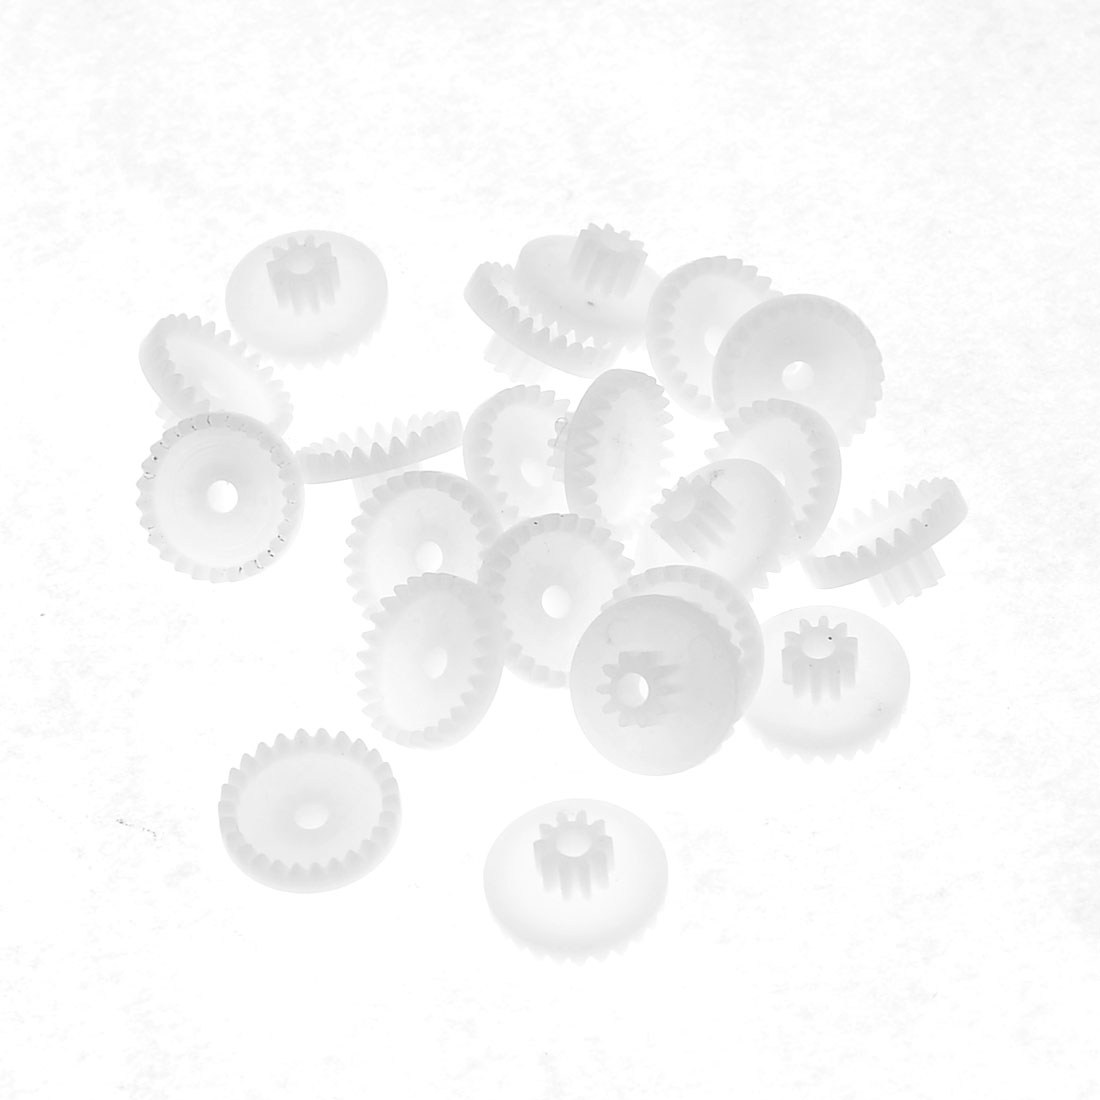 20 Pcs White Plastic Robot Auto Model Crown Wheel Gears 14mm Dia